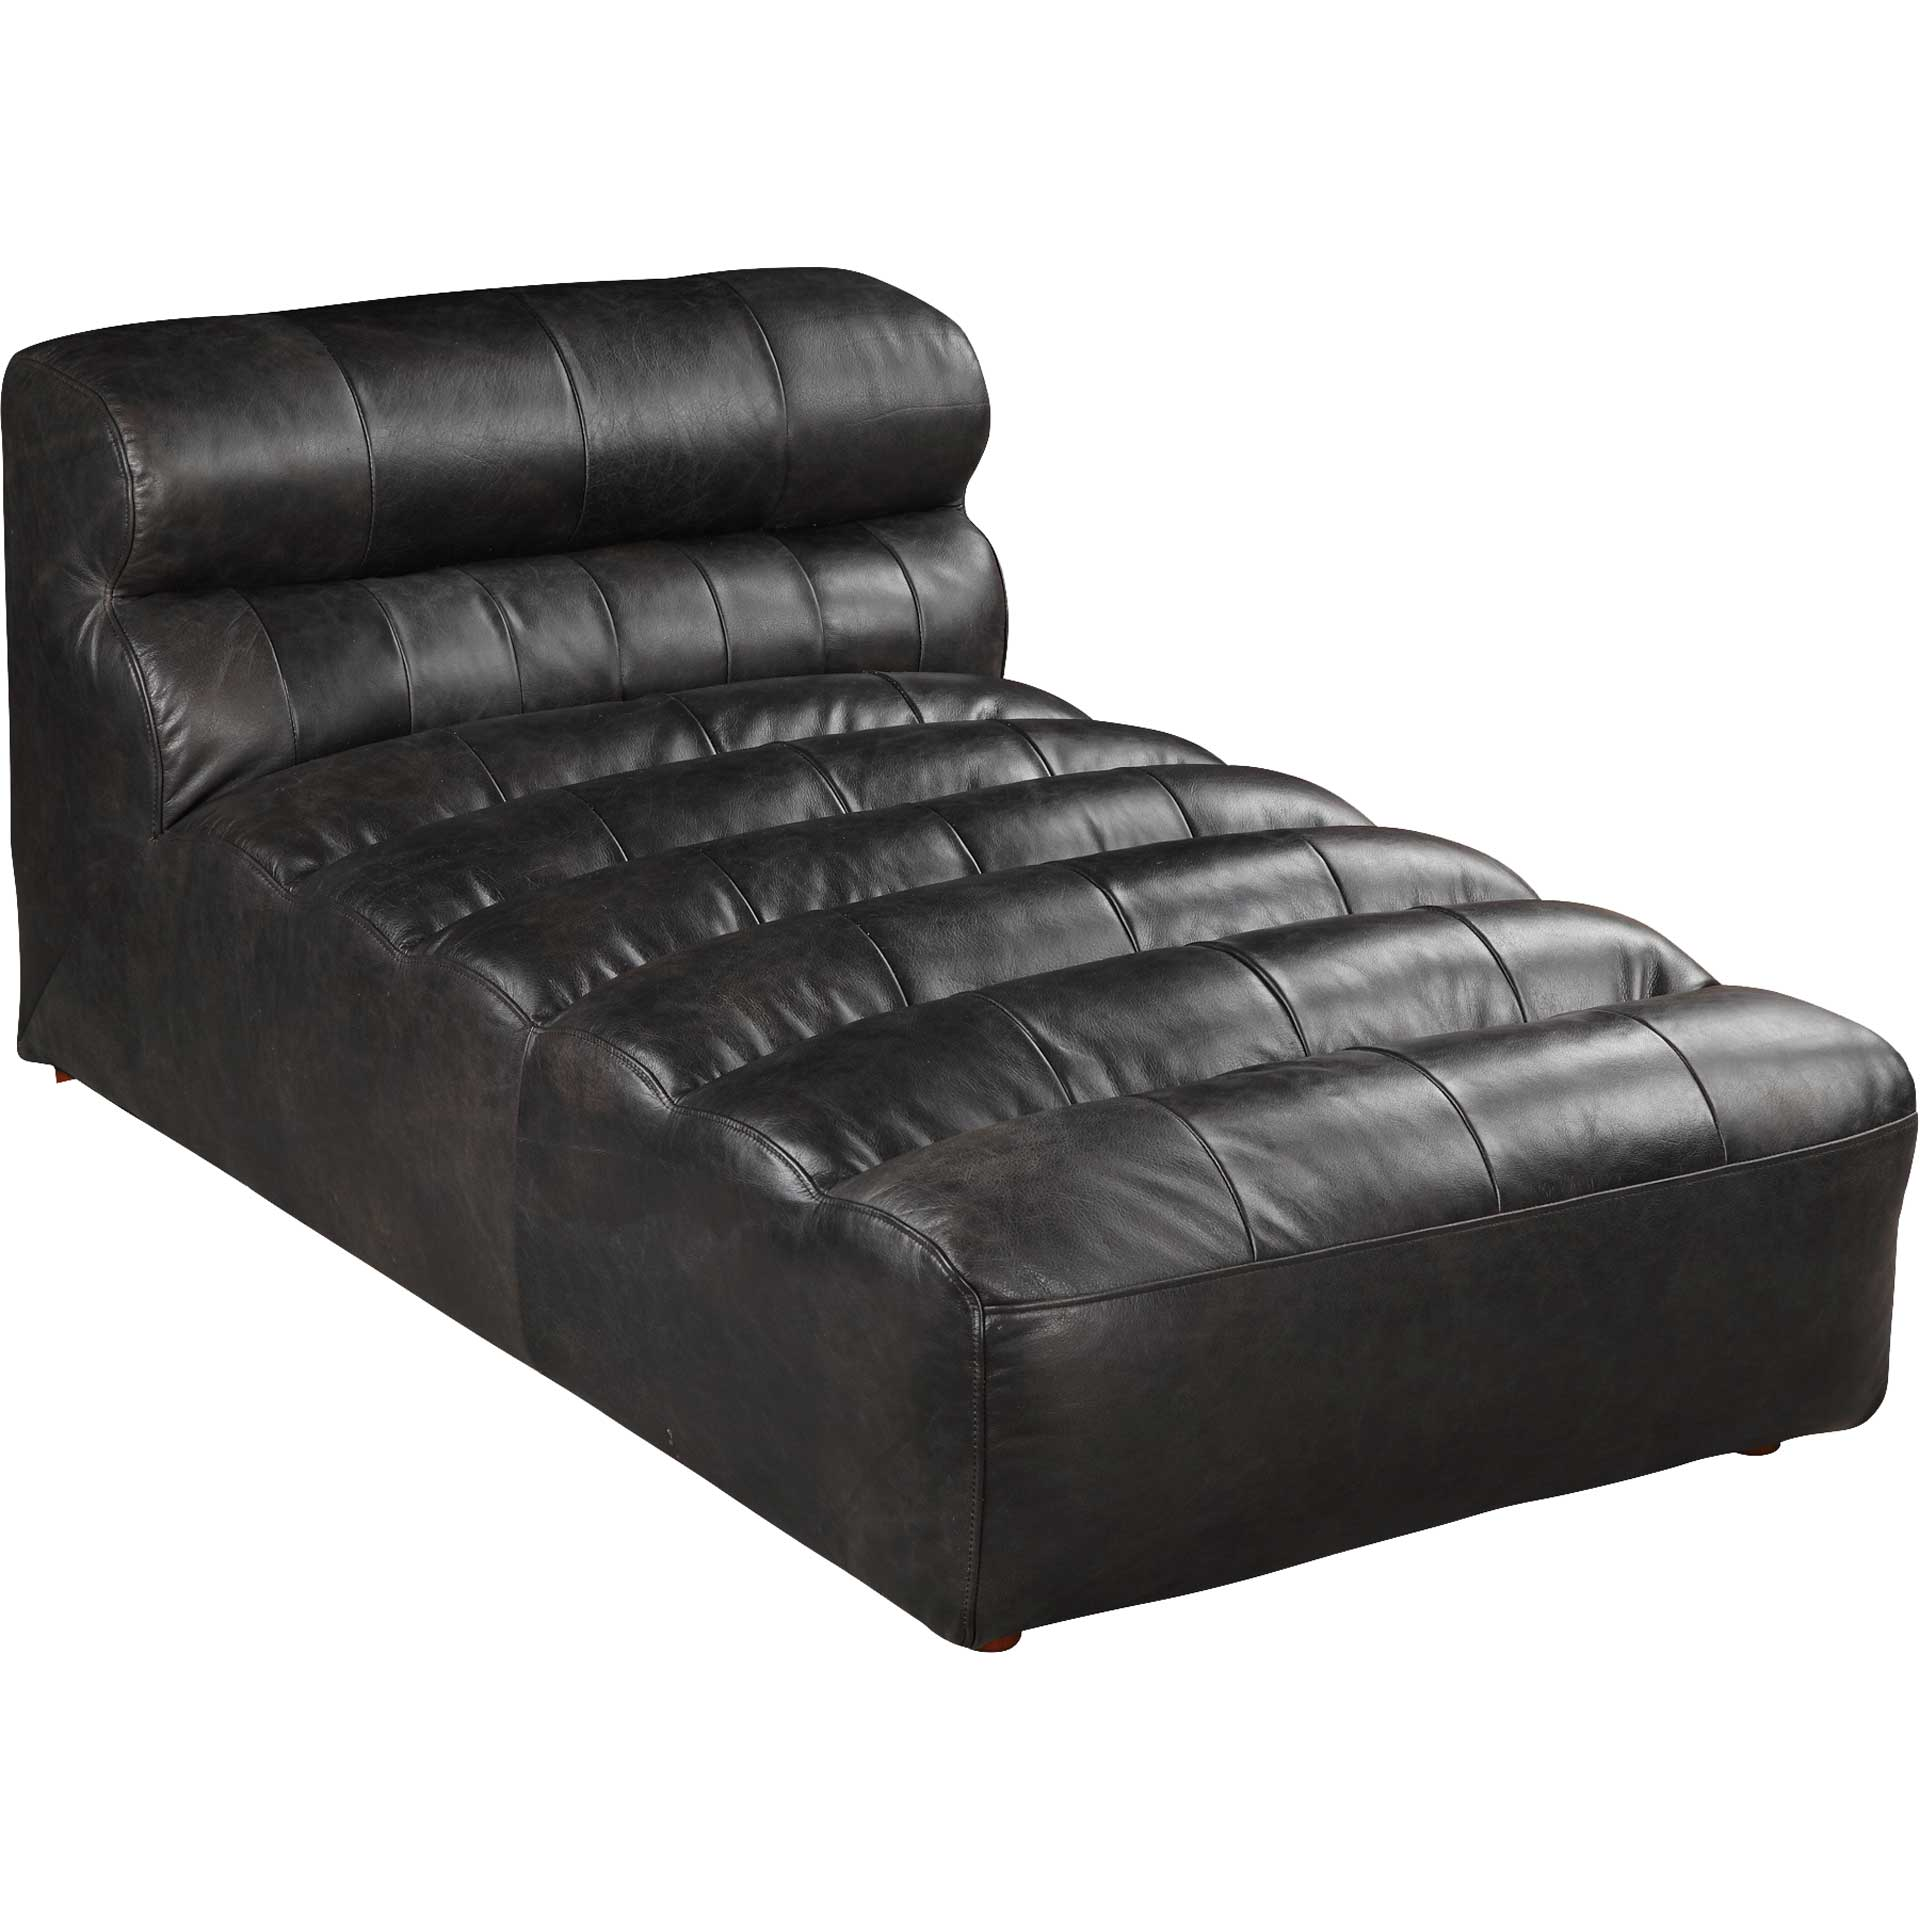 Ramses Leather Chaise